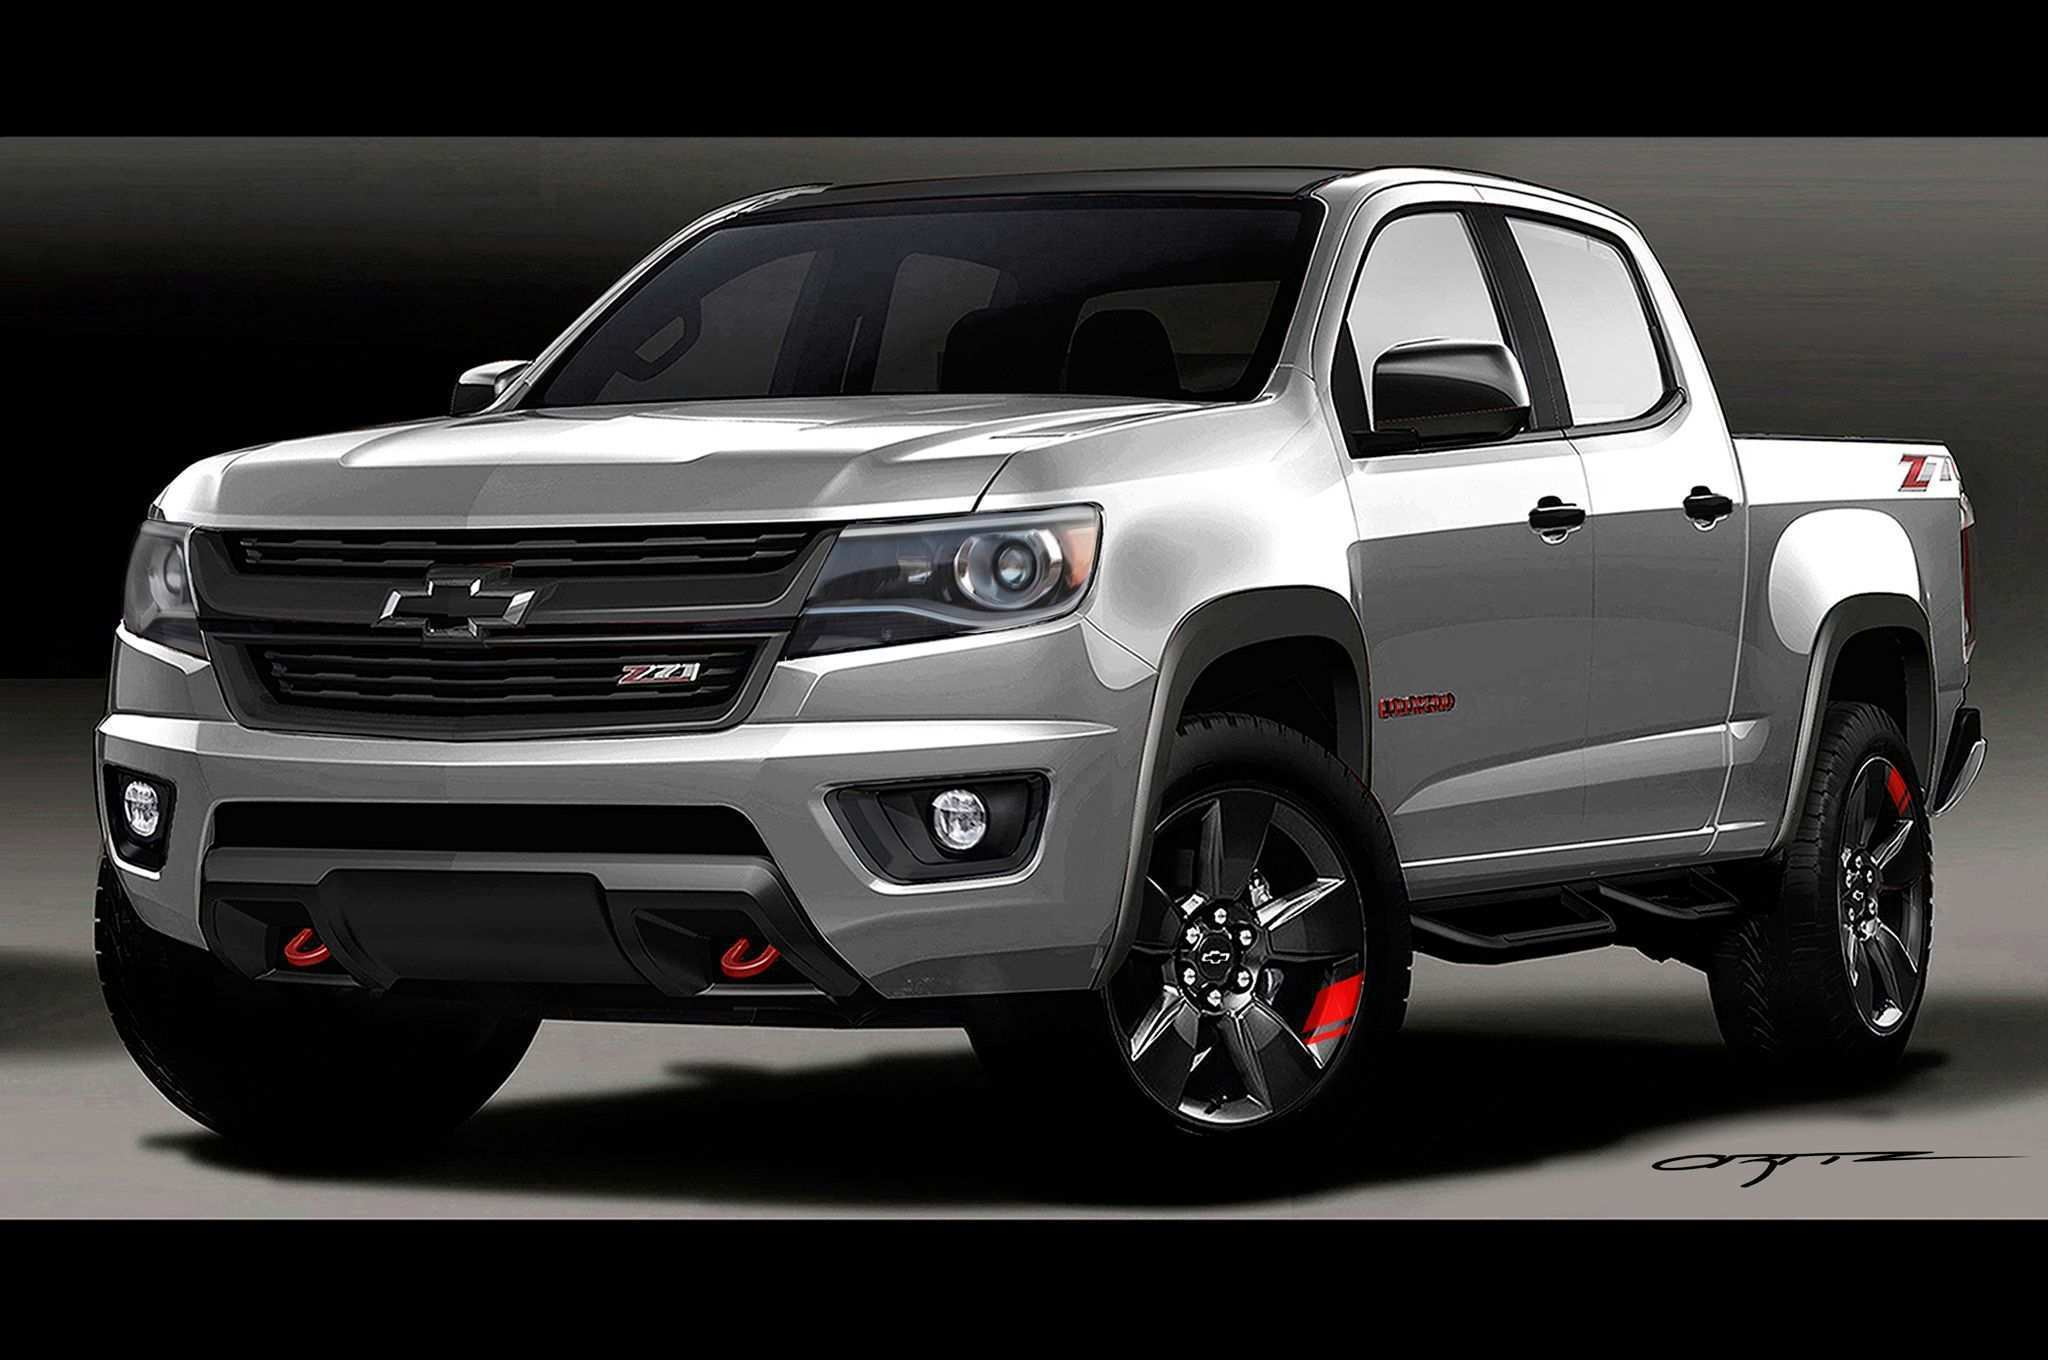 55 Great 2020 Chevy Colorado Going Launched Soon Exterior for 2020 Chevy Colorado Going Launched Soon